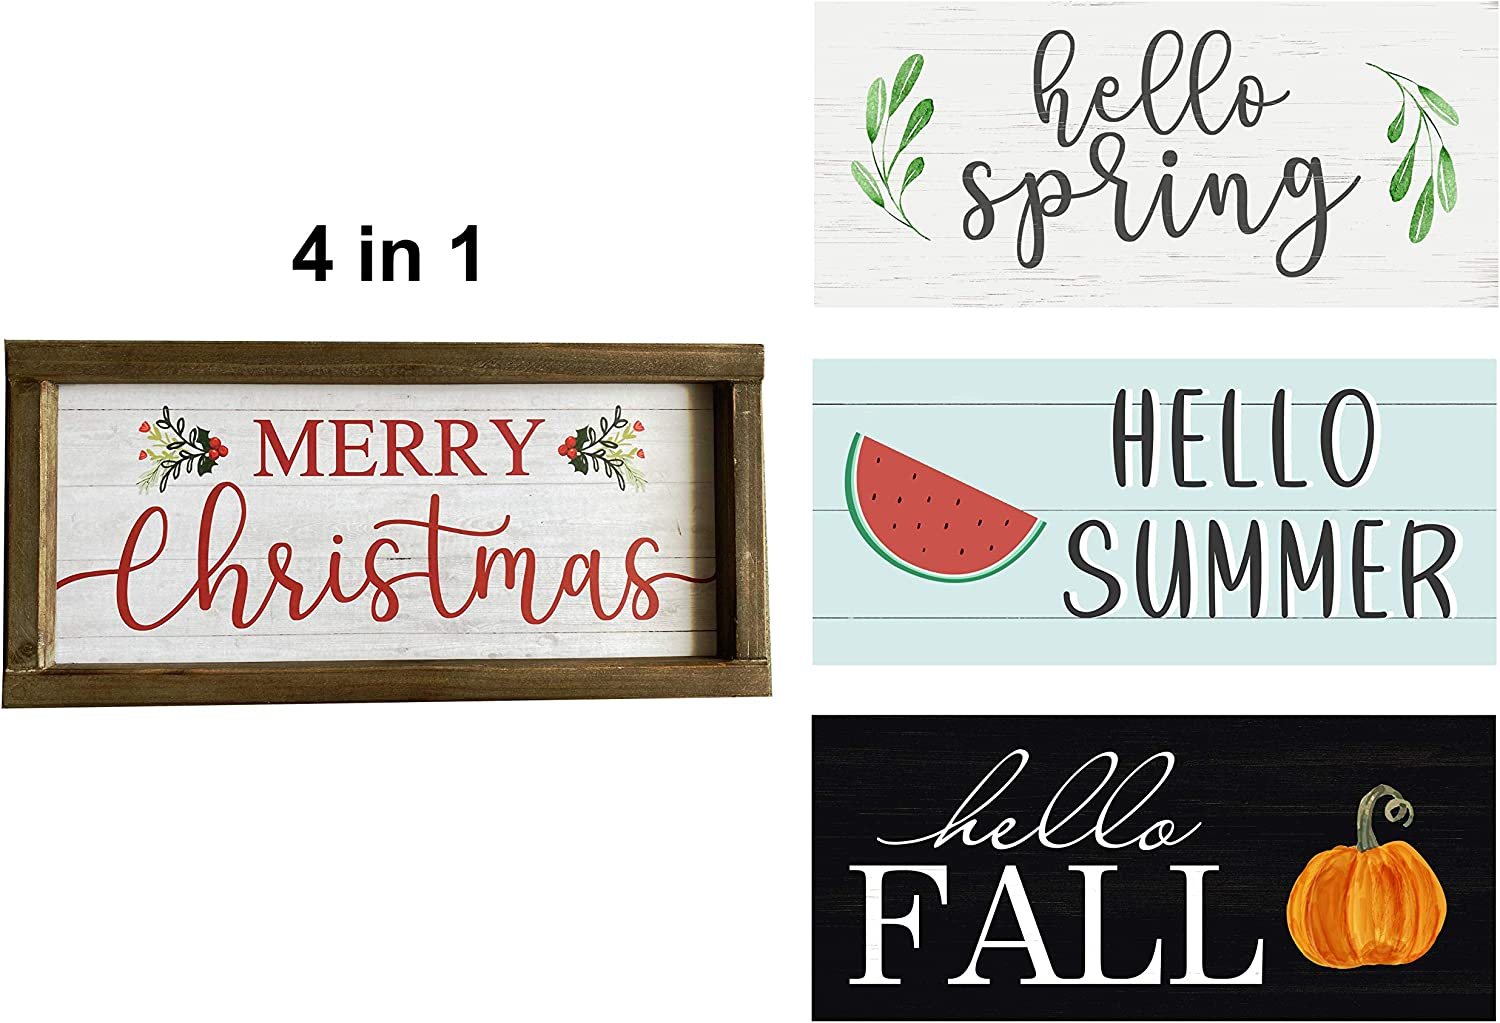 Hello Fall Merry Christmas Hello Spring Hello Summer 4 in 1 Christmas Wood Wall Sign Thanksgiving Farmhouse Signs Halloween Wooden Sign Seasonal Plaque 15 x 7 inches